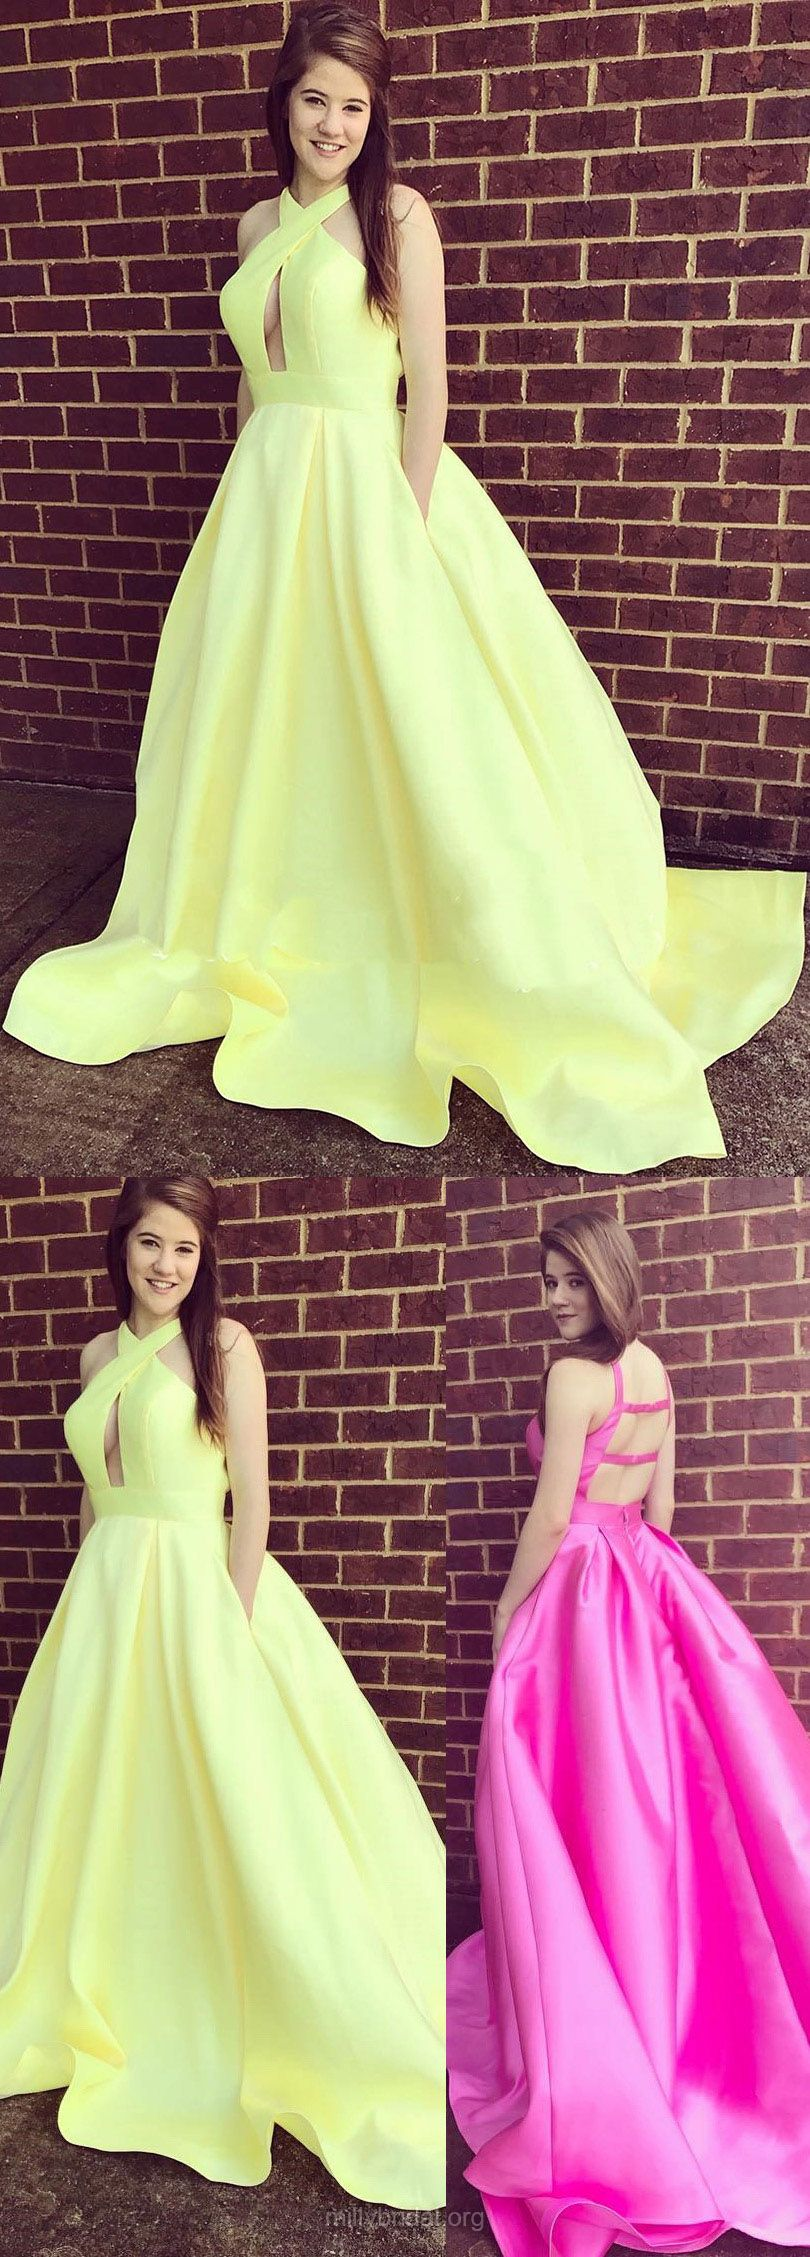 Yellow prom dresseslong prom dresses ball gown vneck prom dresses